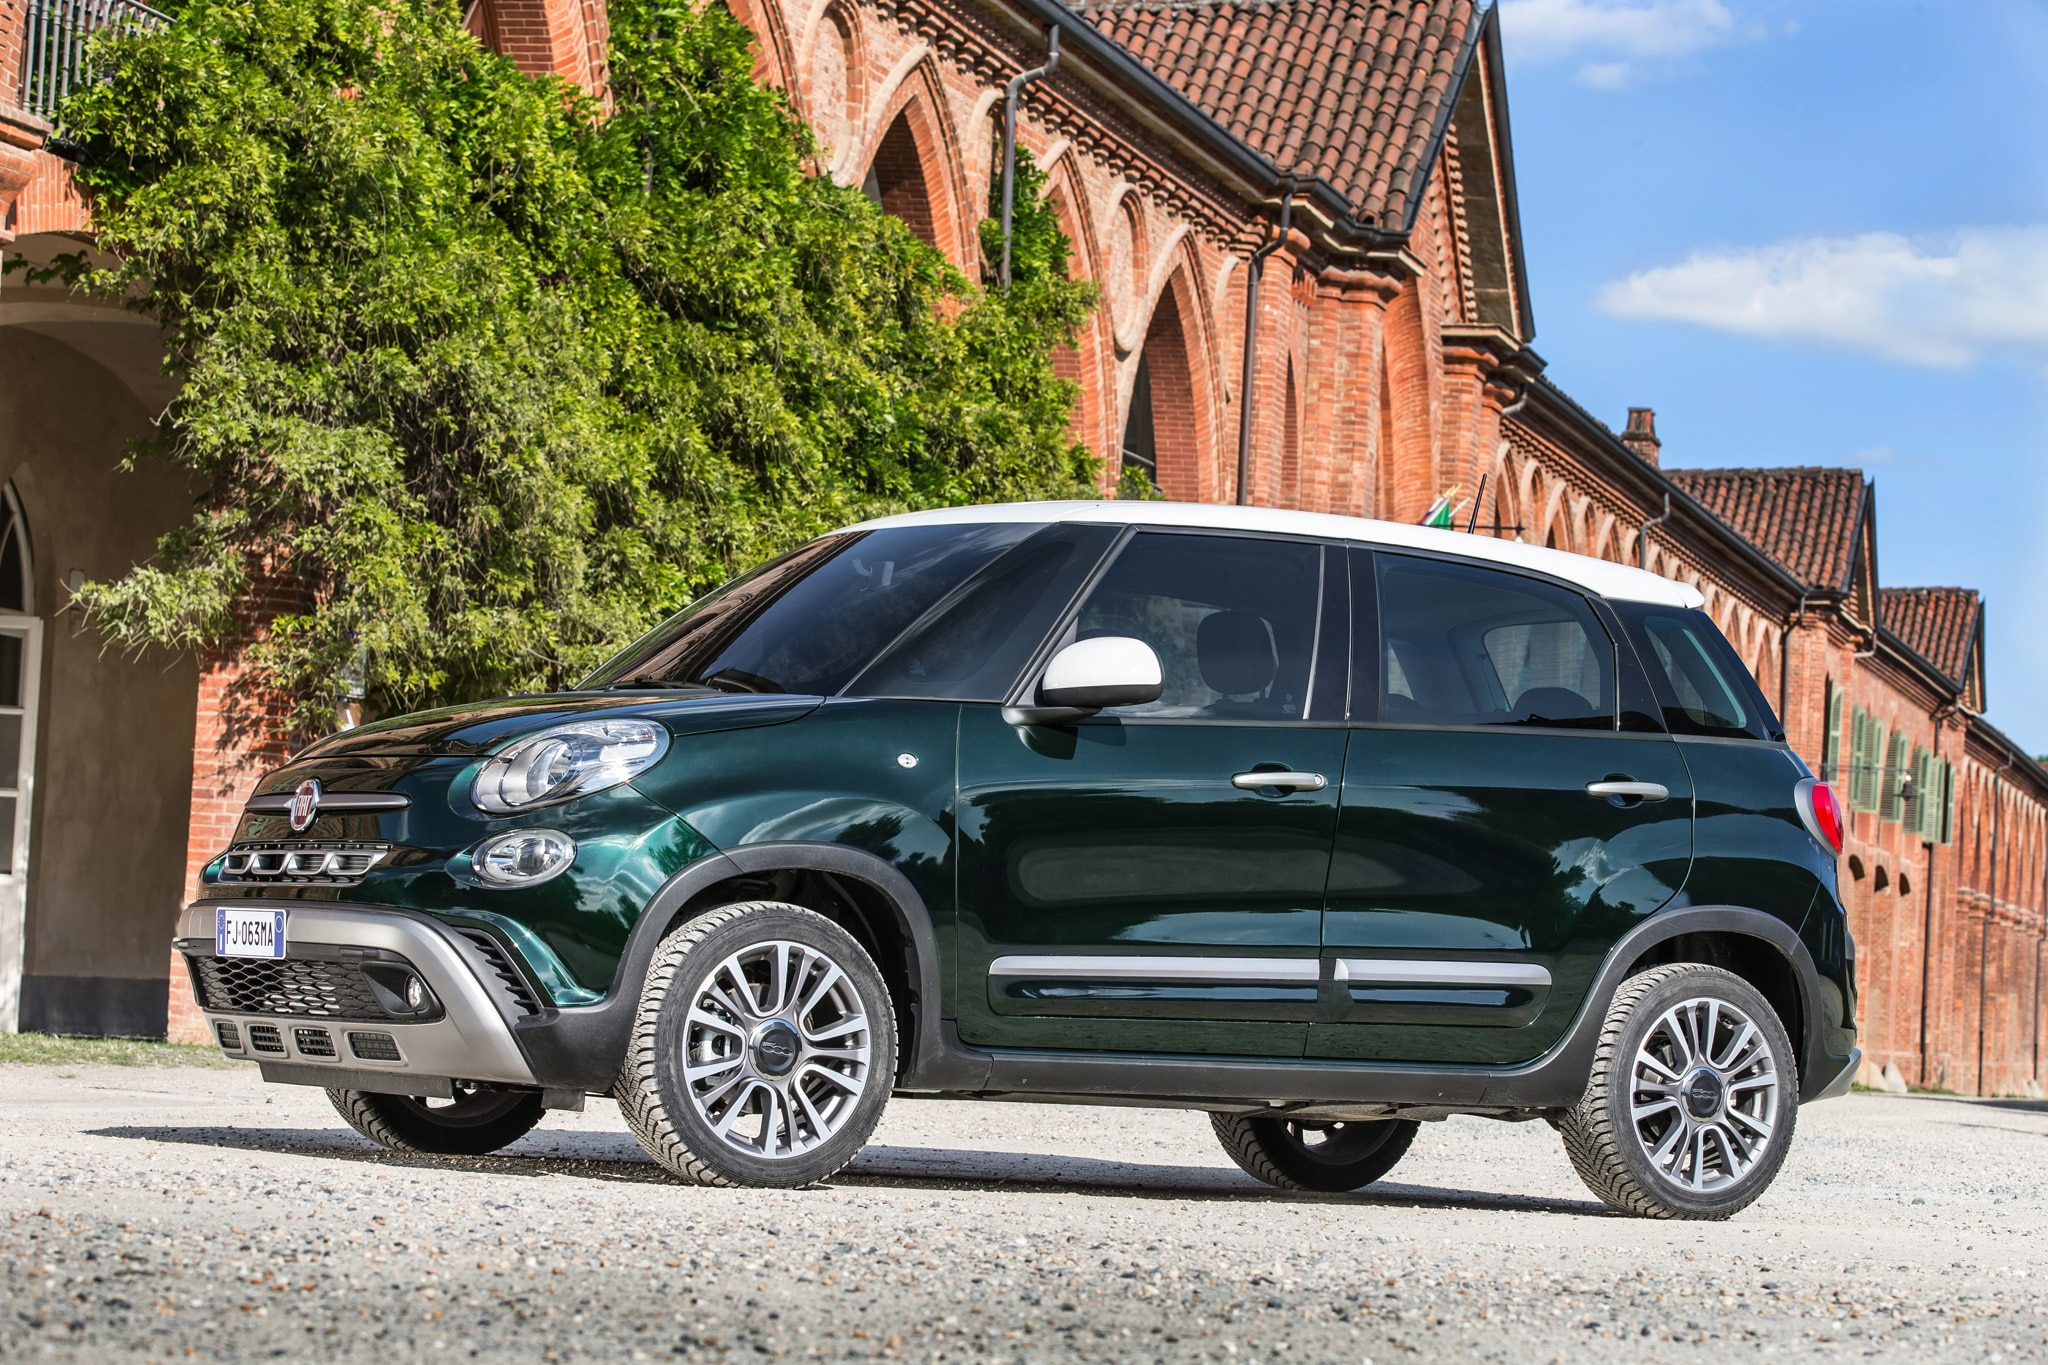 Fiat 500L Gets Major Facelift for 2018 | Automobile Magazine